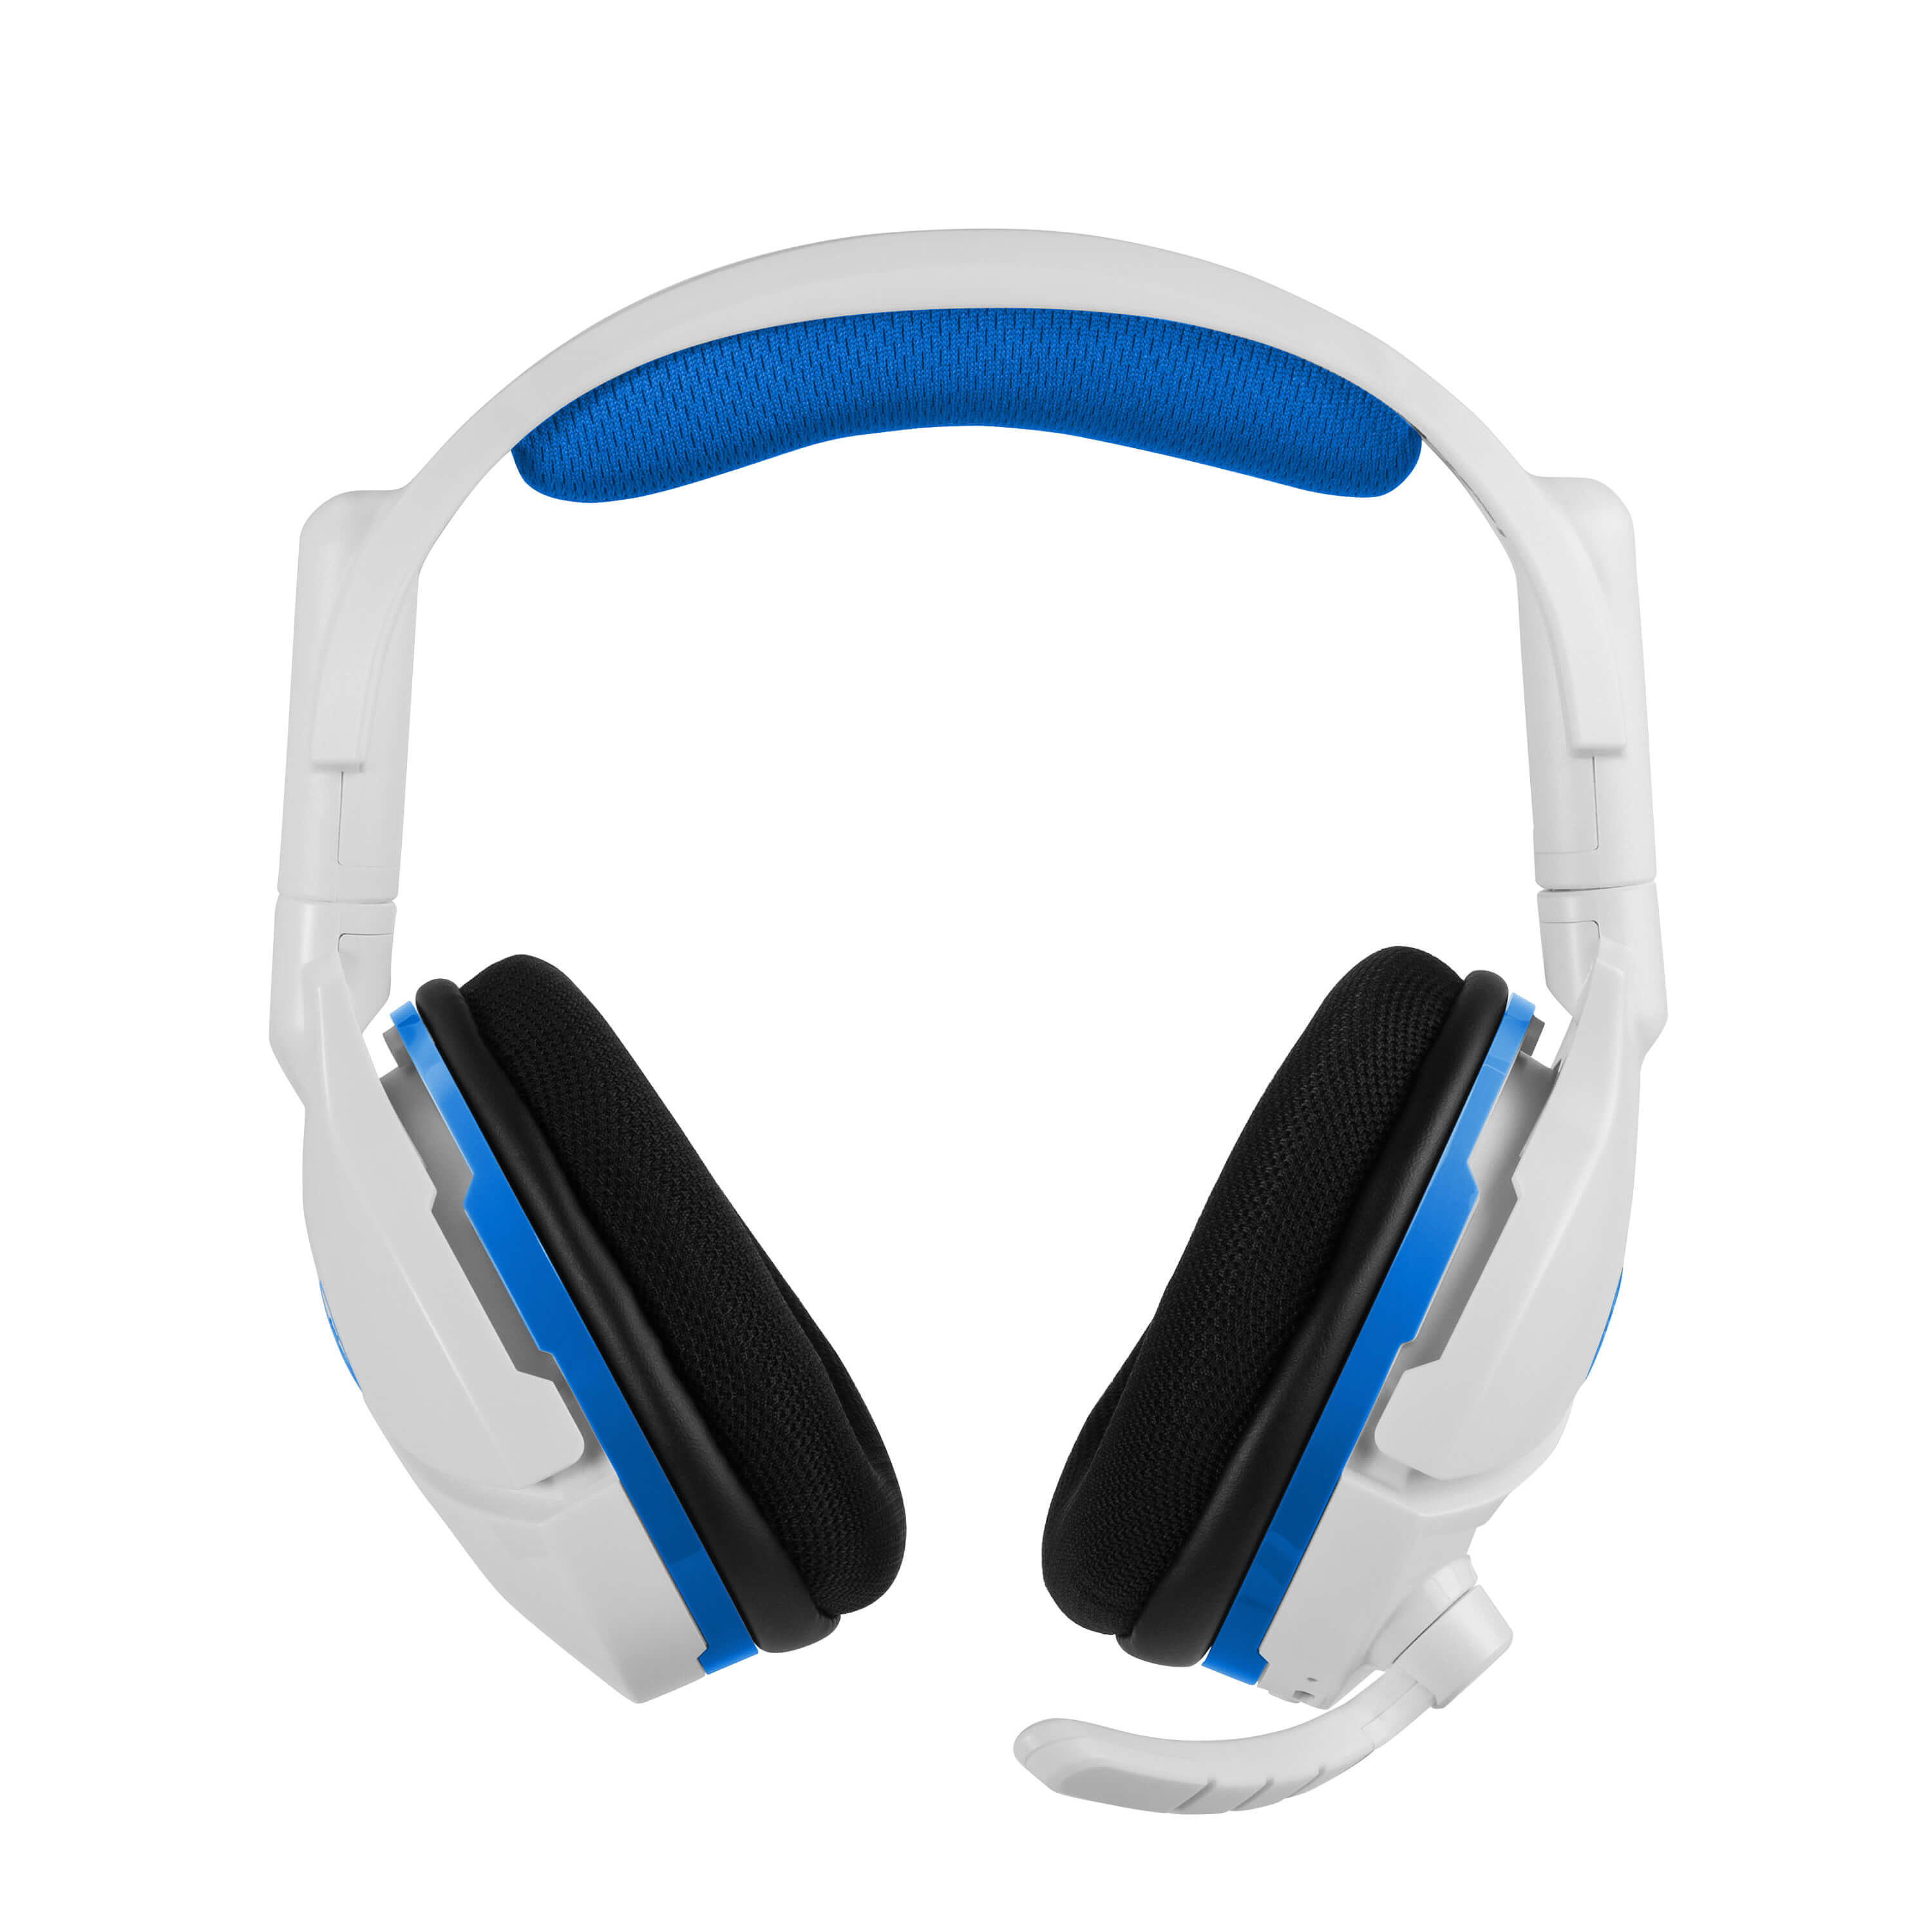 1aa19b5a144 Buy Turtle Beach Stealth 600 White Wireless Gaming Headset for PS4 ...